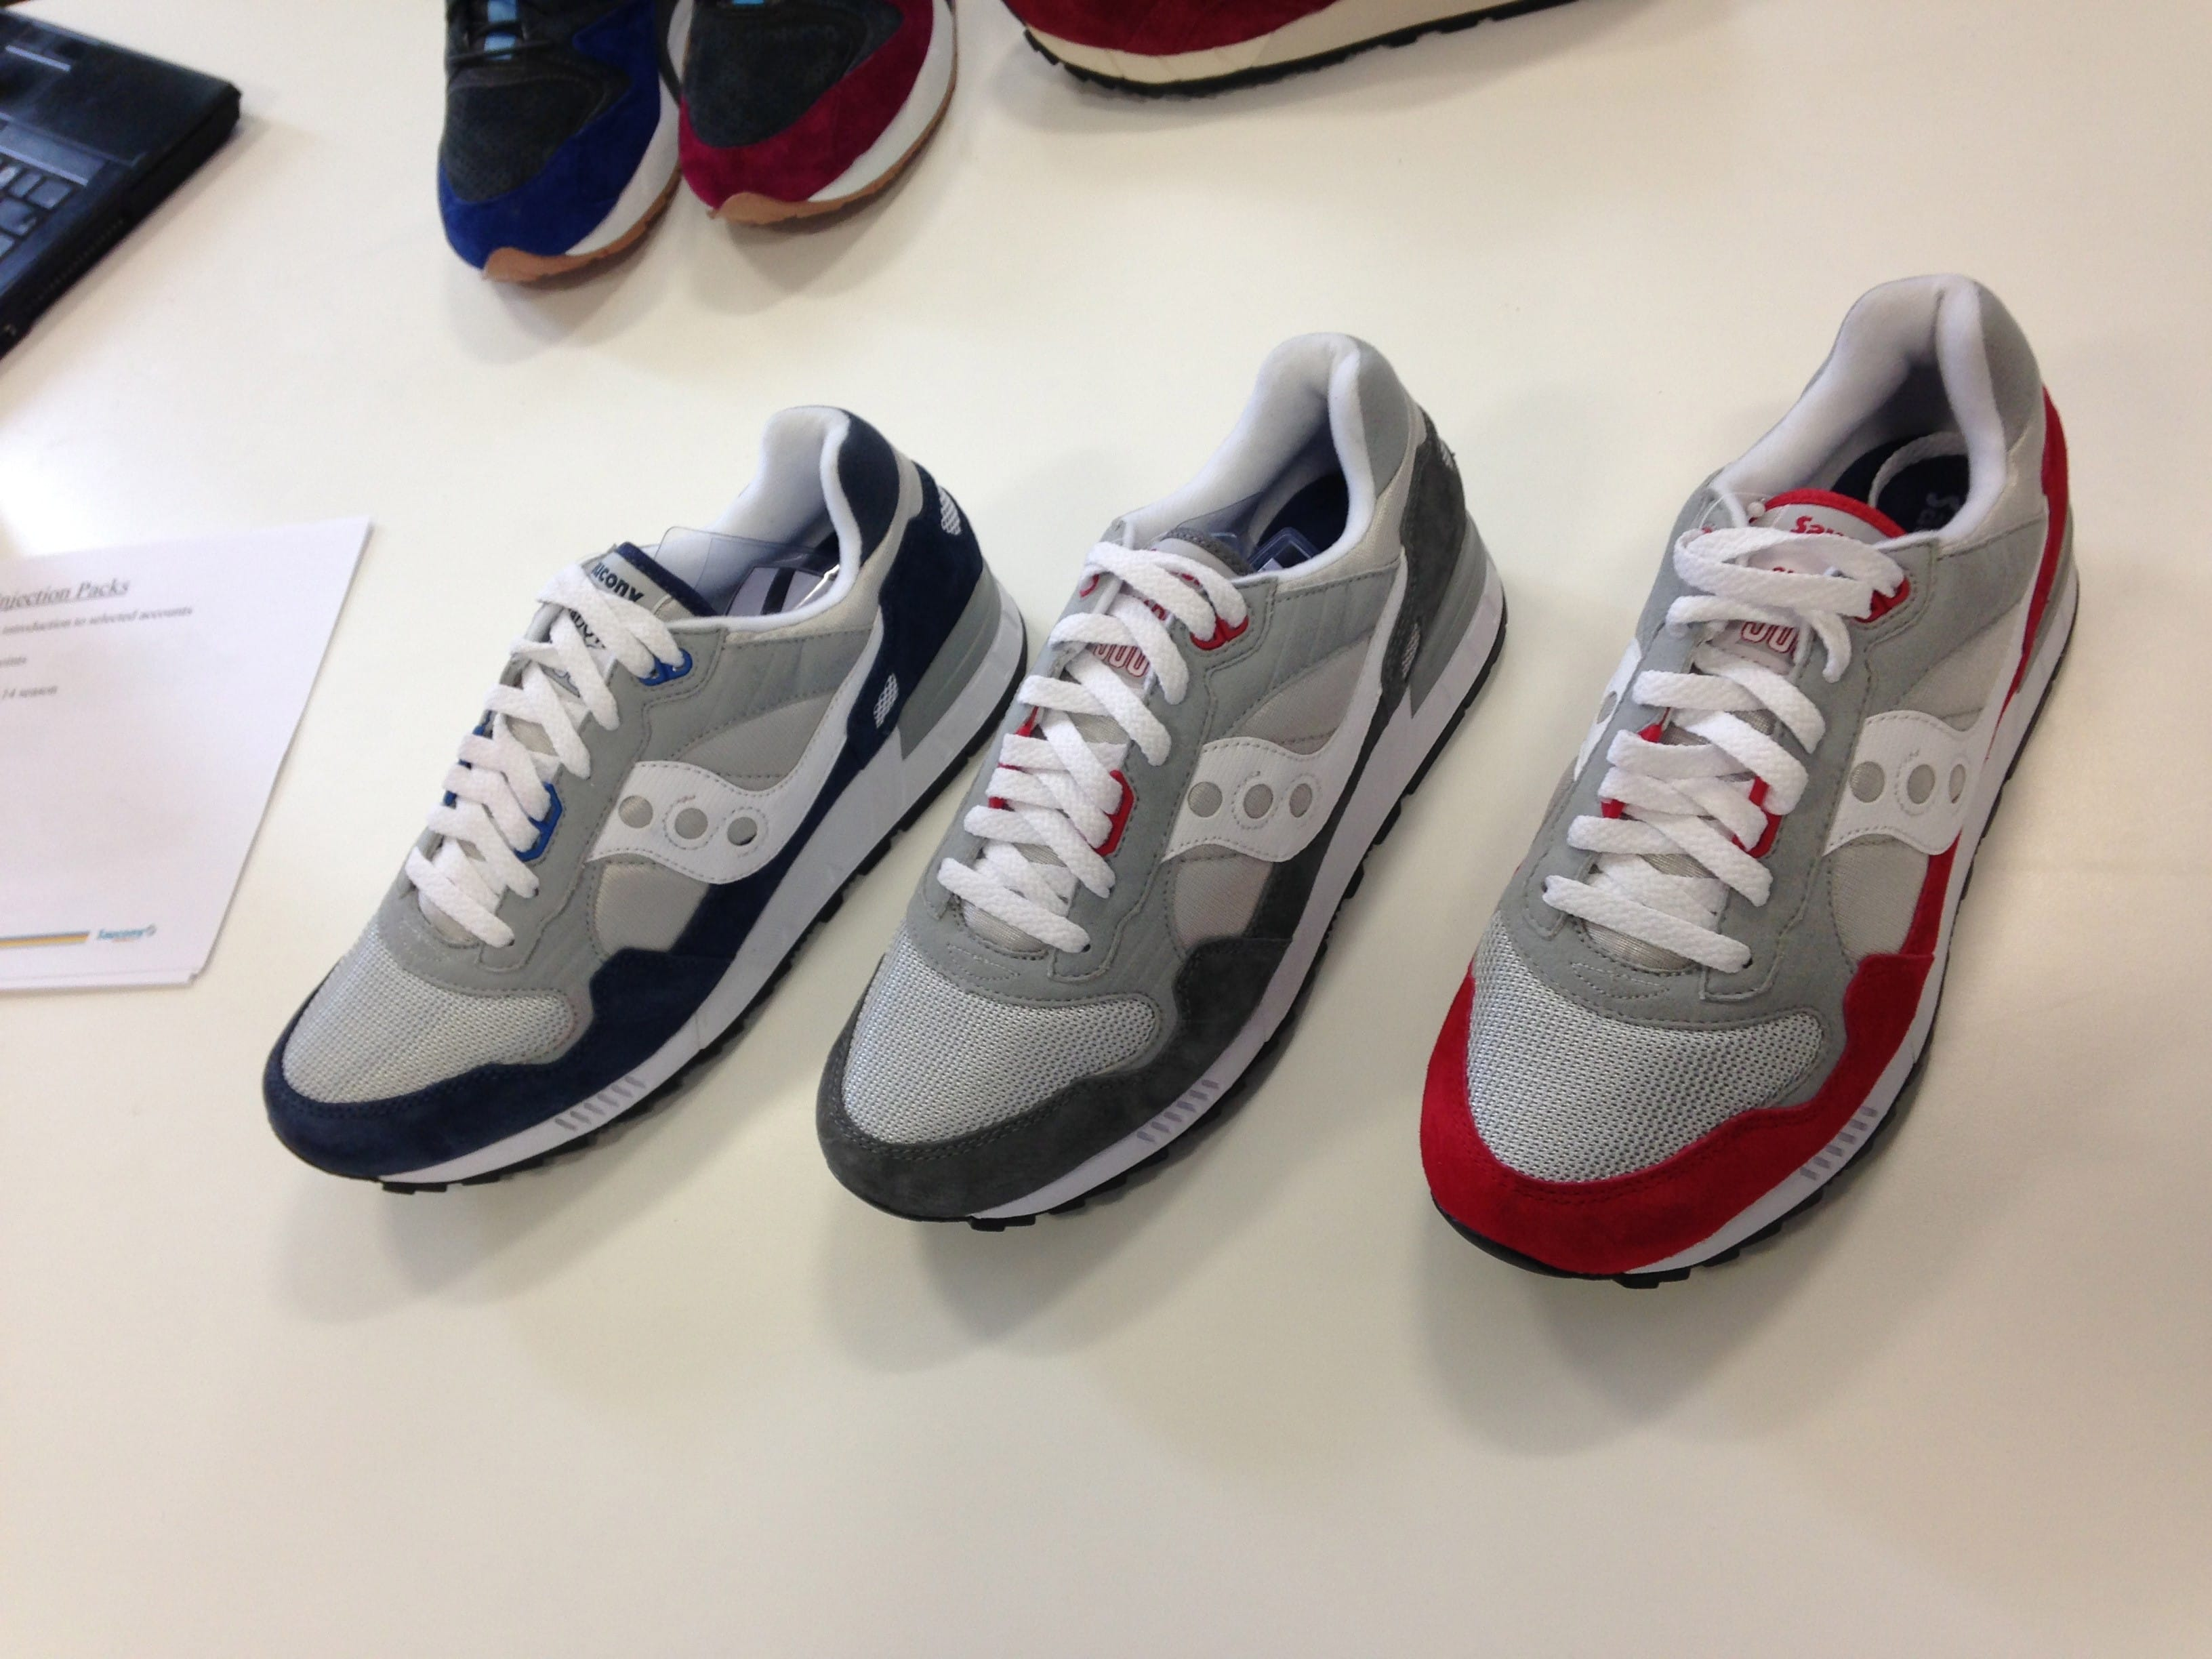 7a2db5f024b4 Buy saucony shoes history   Up to OFF76% Discounted